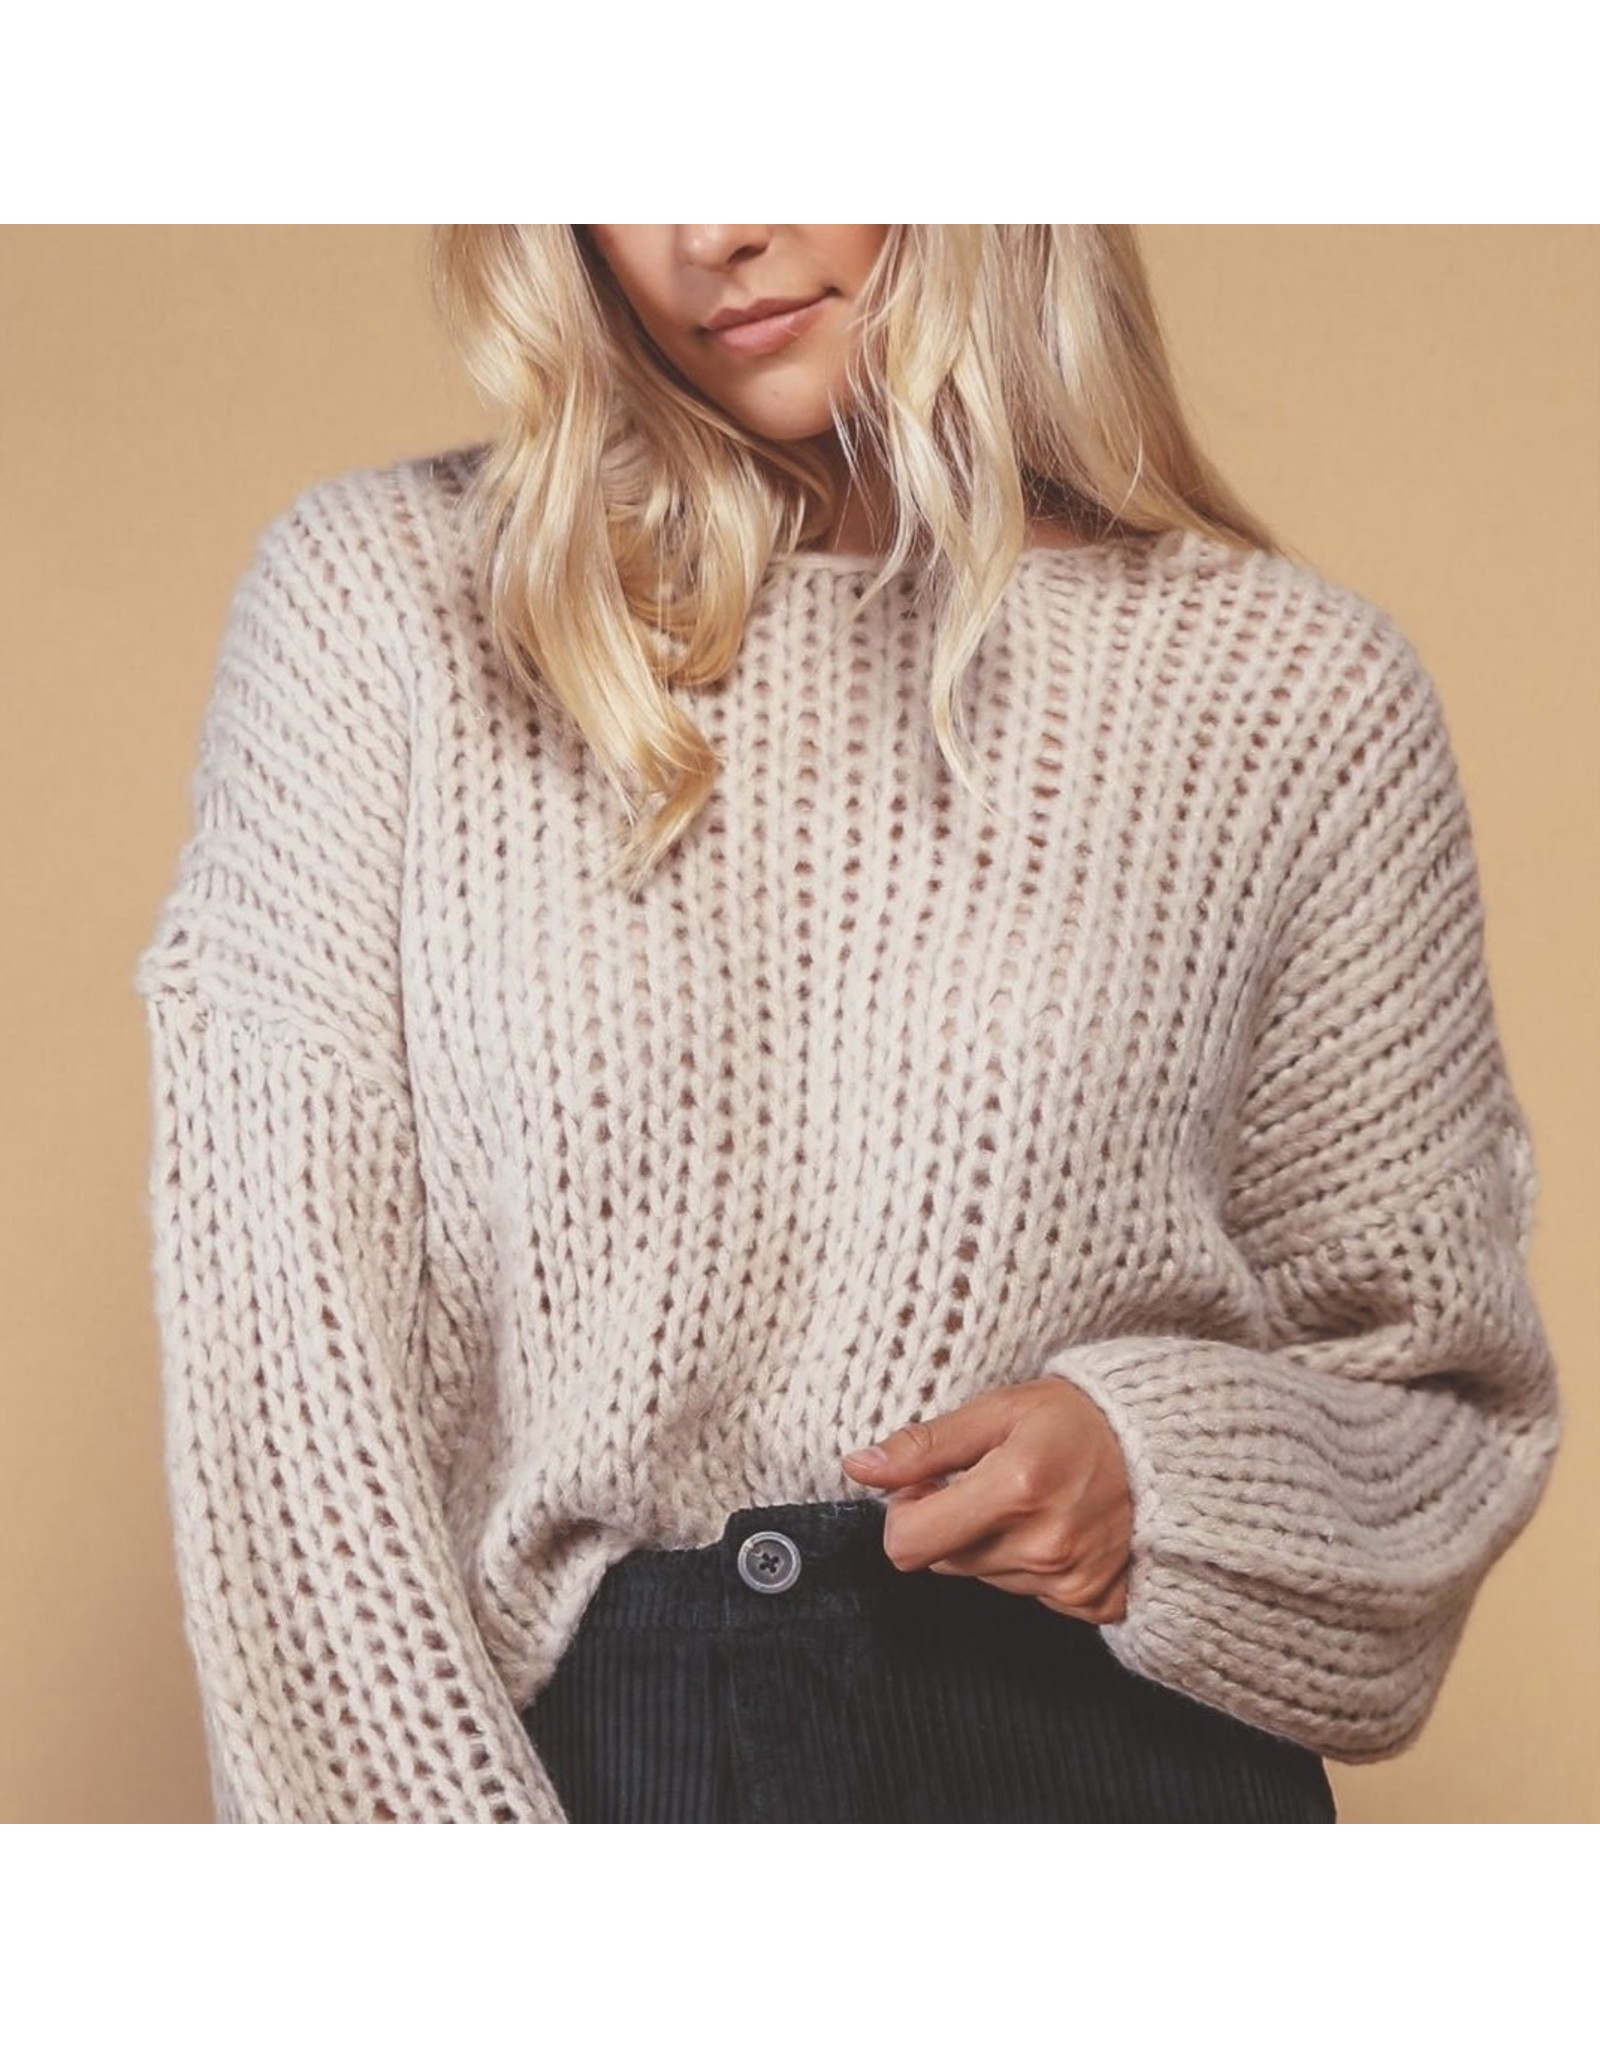 AMUSE Desert Skies Knit Sweater